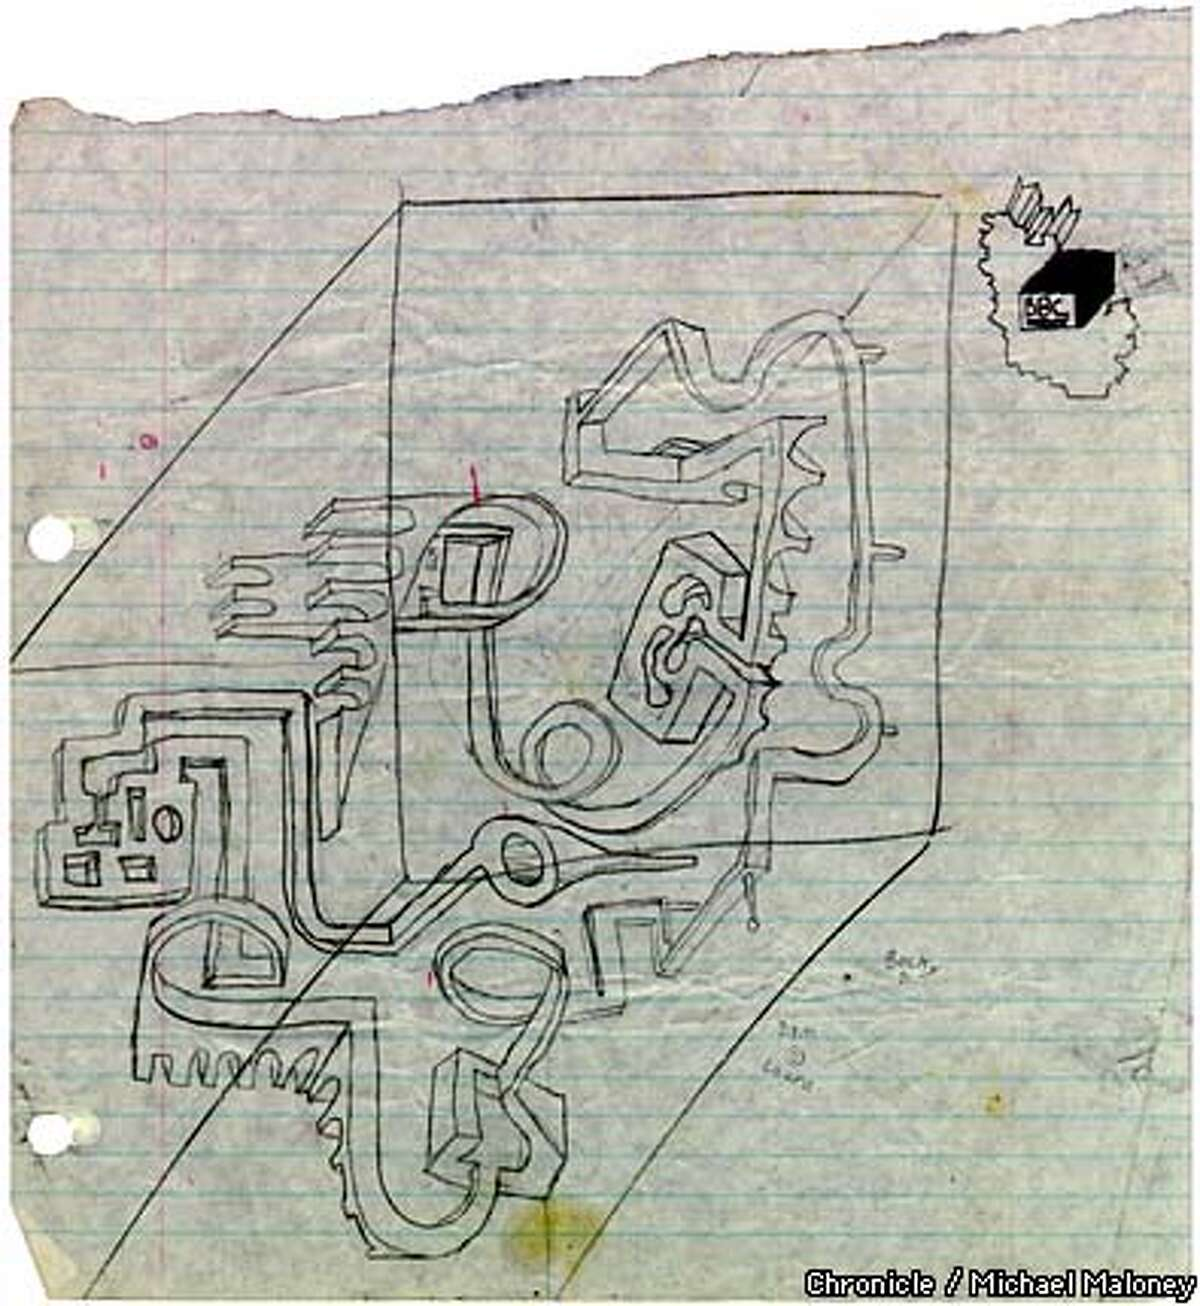 The original sketch for McGinnis' idea that became the Superplexus. Chronicle photo by Michael Maloney